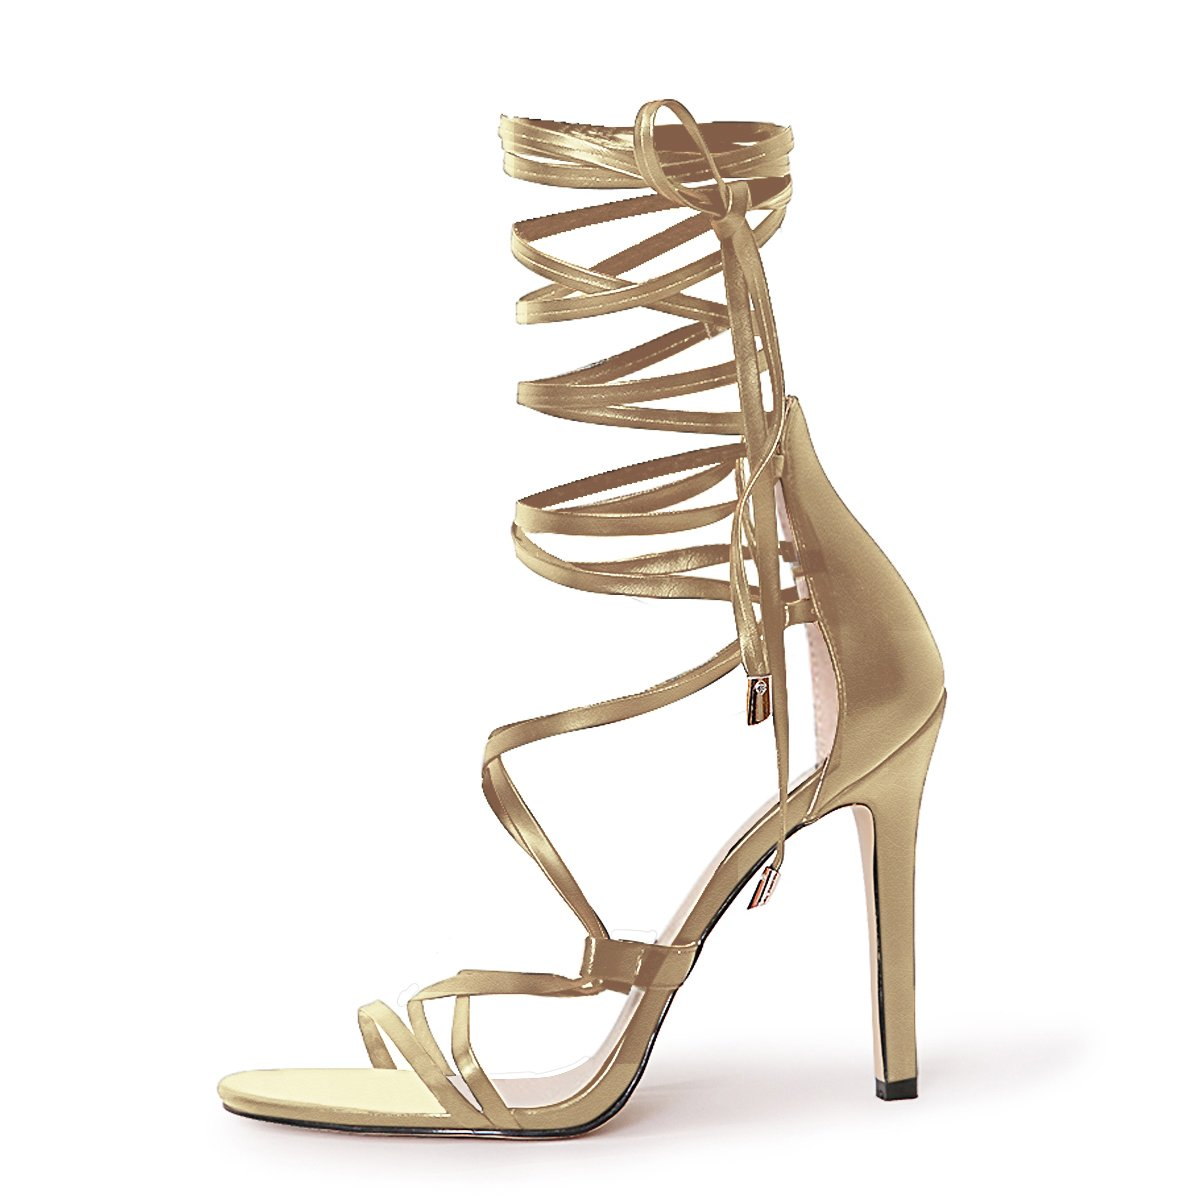 Women's Gold Gladiator Open Toe High-Heels Lace-Up Strappy Sandals - DeluxeAdultCostumes.com